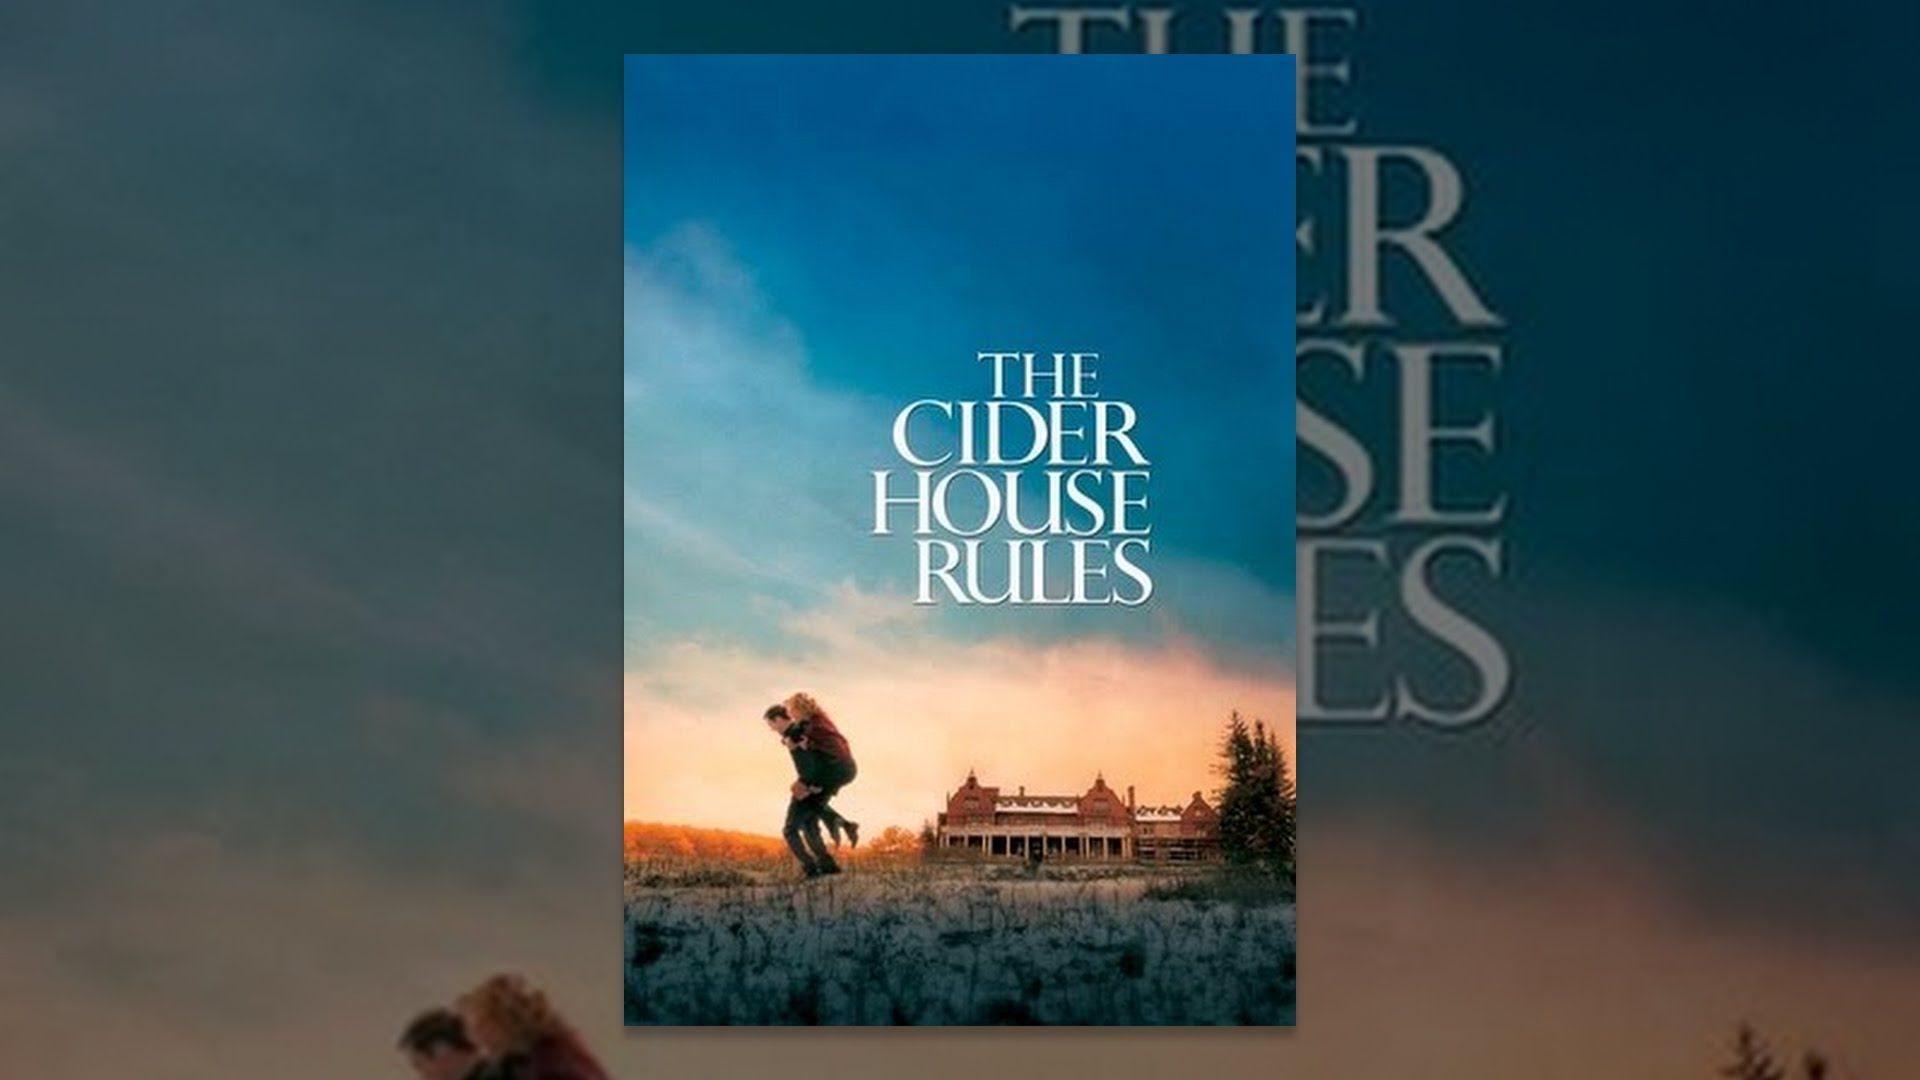 the cider house rules 2 essay The new cider house rules sure it can kill you, but unpasteurized is one of the little pleasures that i refuse to surrender--even if the feds are trying to make it illegal.